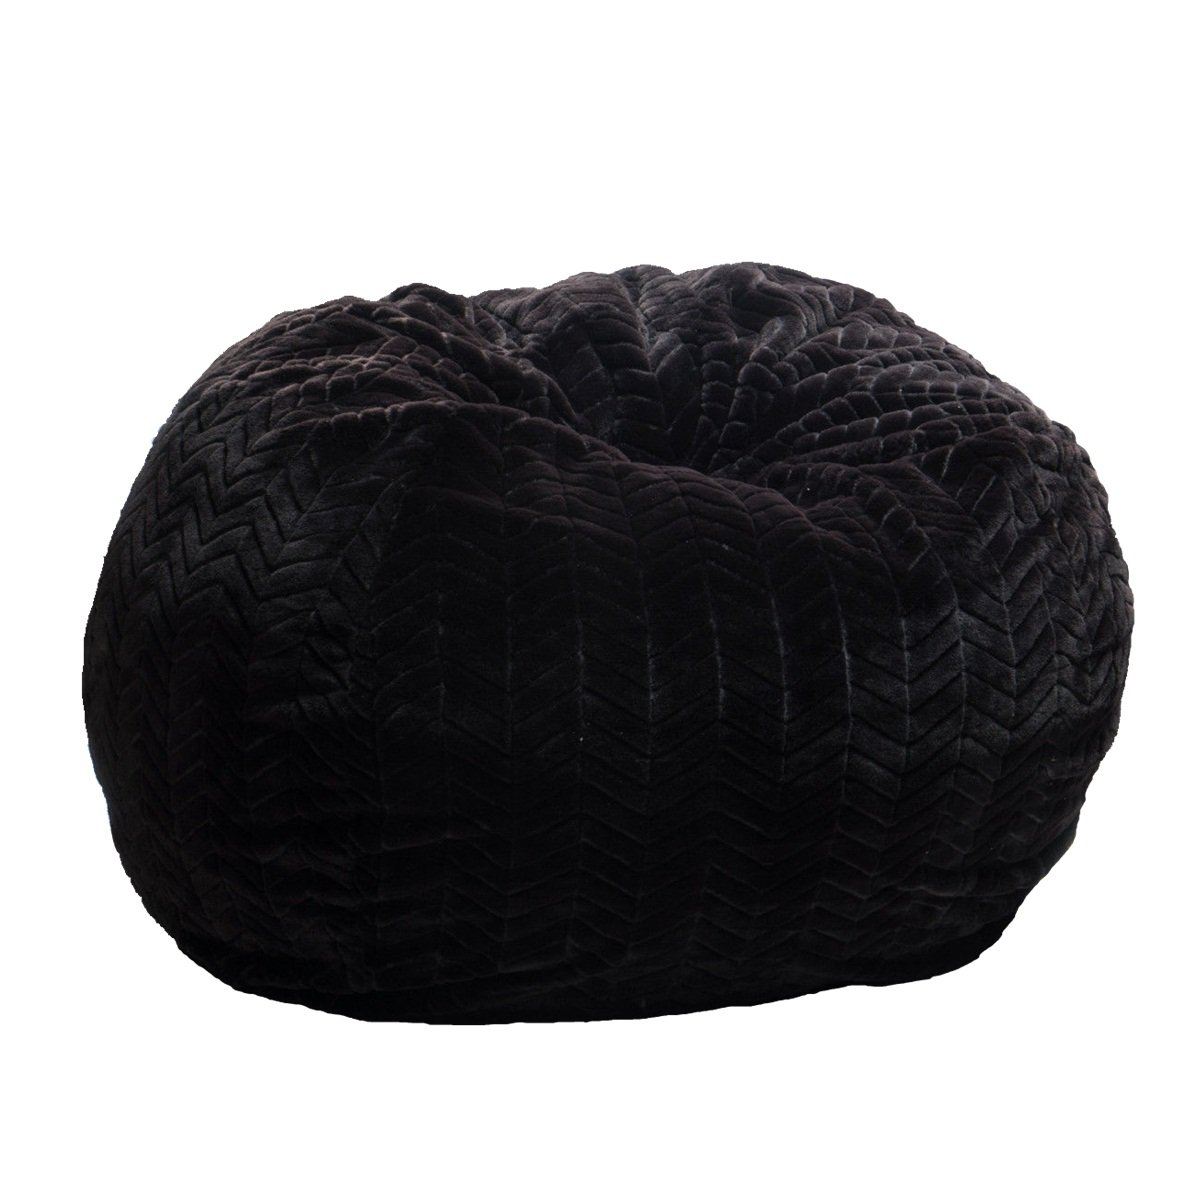 Black Soft Faux Fur Bean Bag